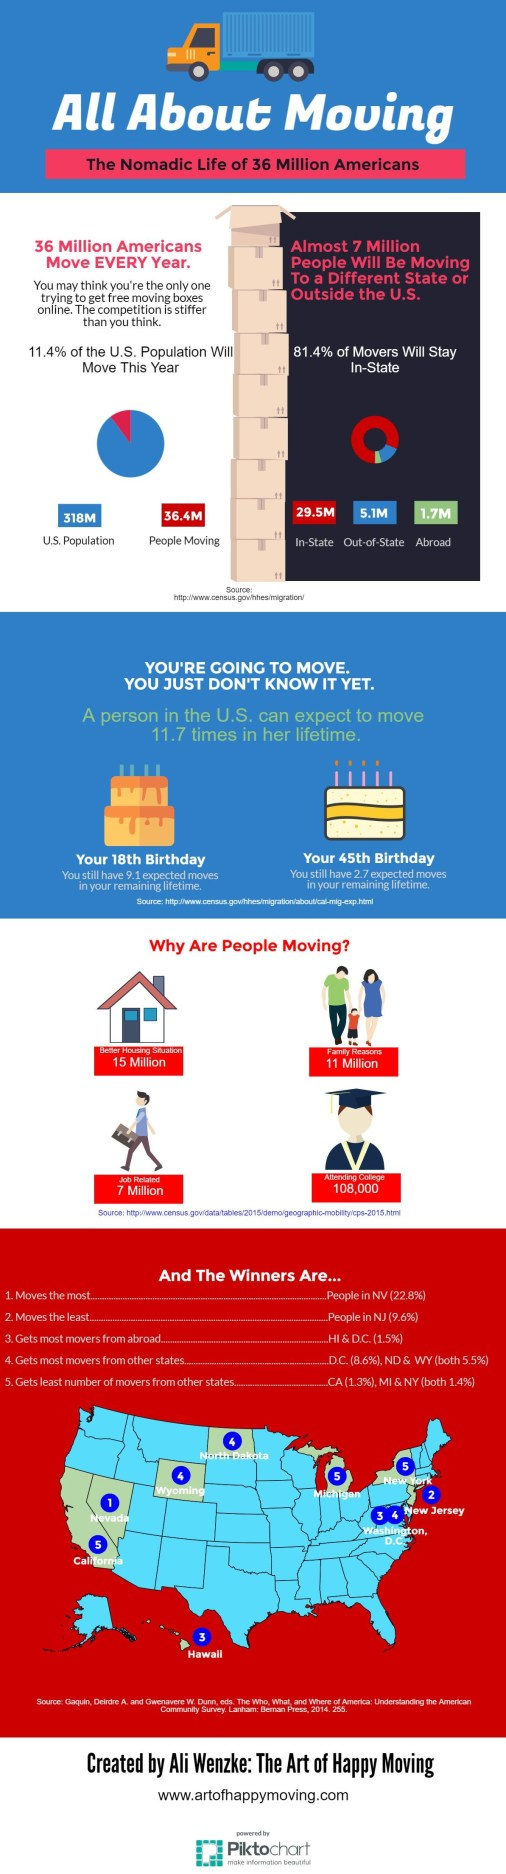 Demographic mobility in the U.S. All about Moving. www.artofhappymoving.com